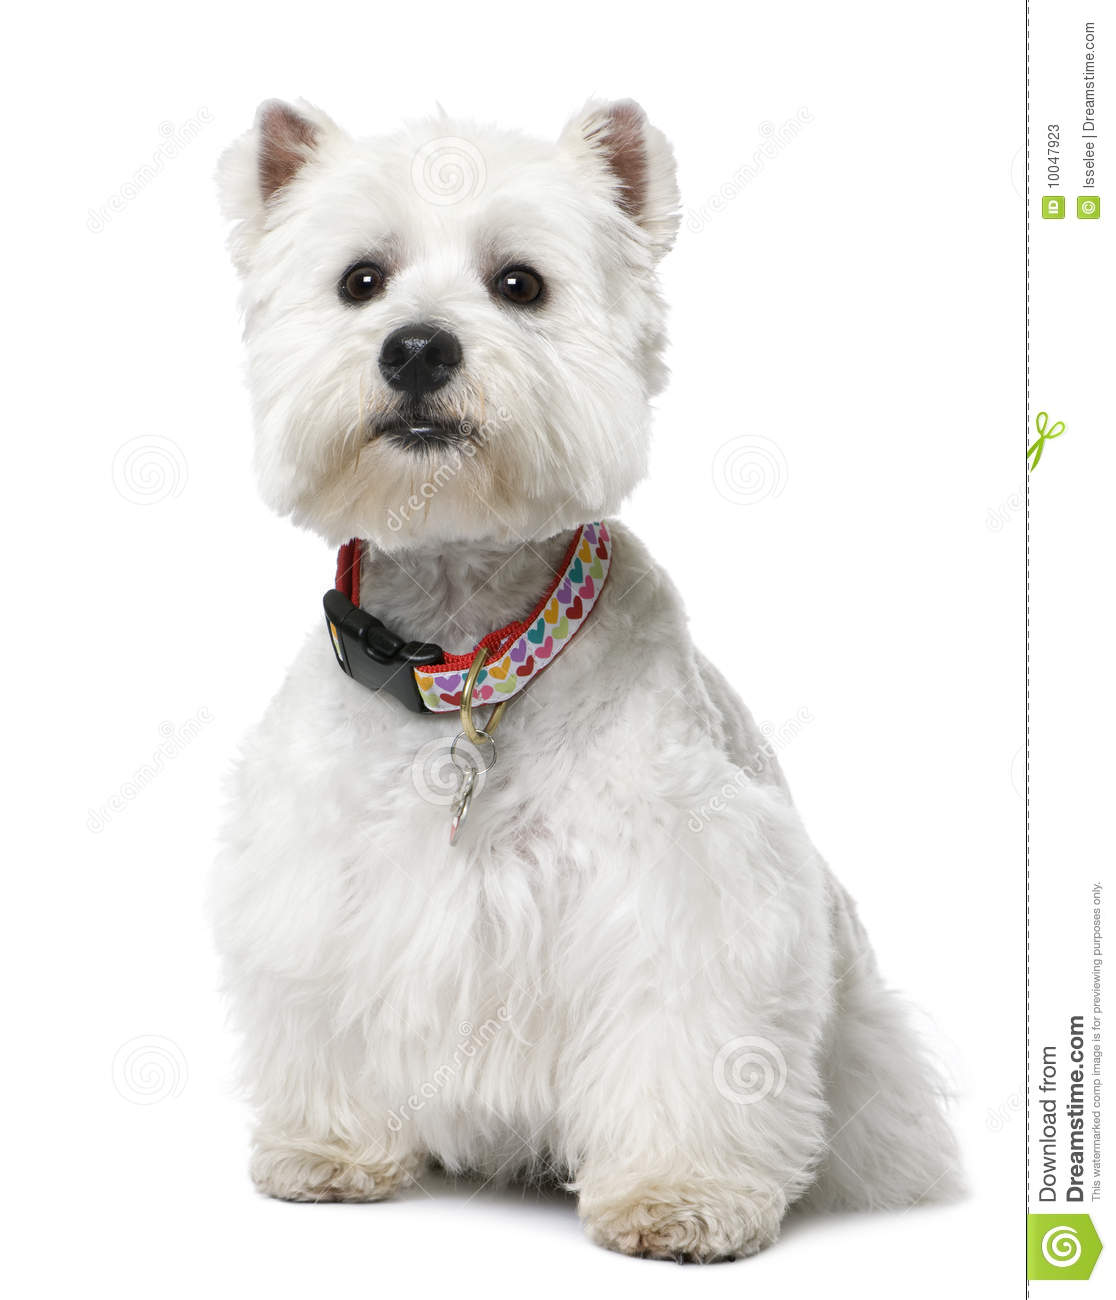 West Highland White Terrier (2 years old) sitting.